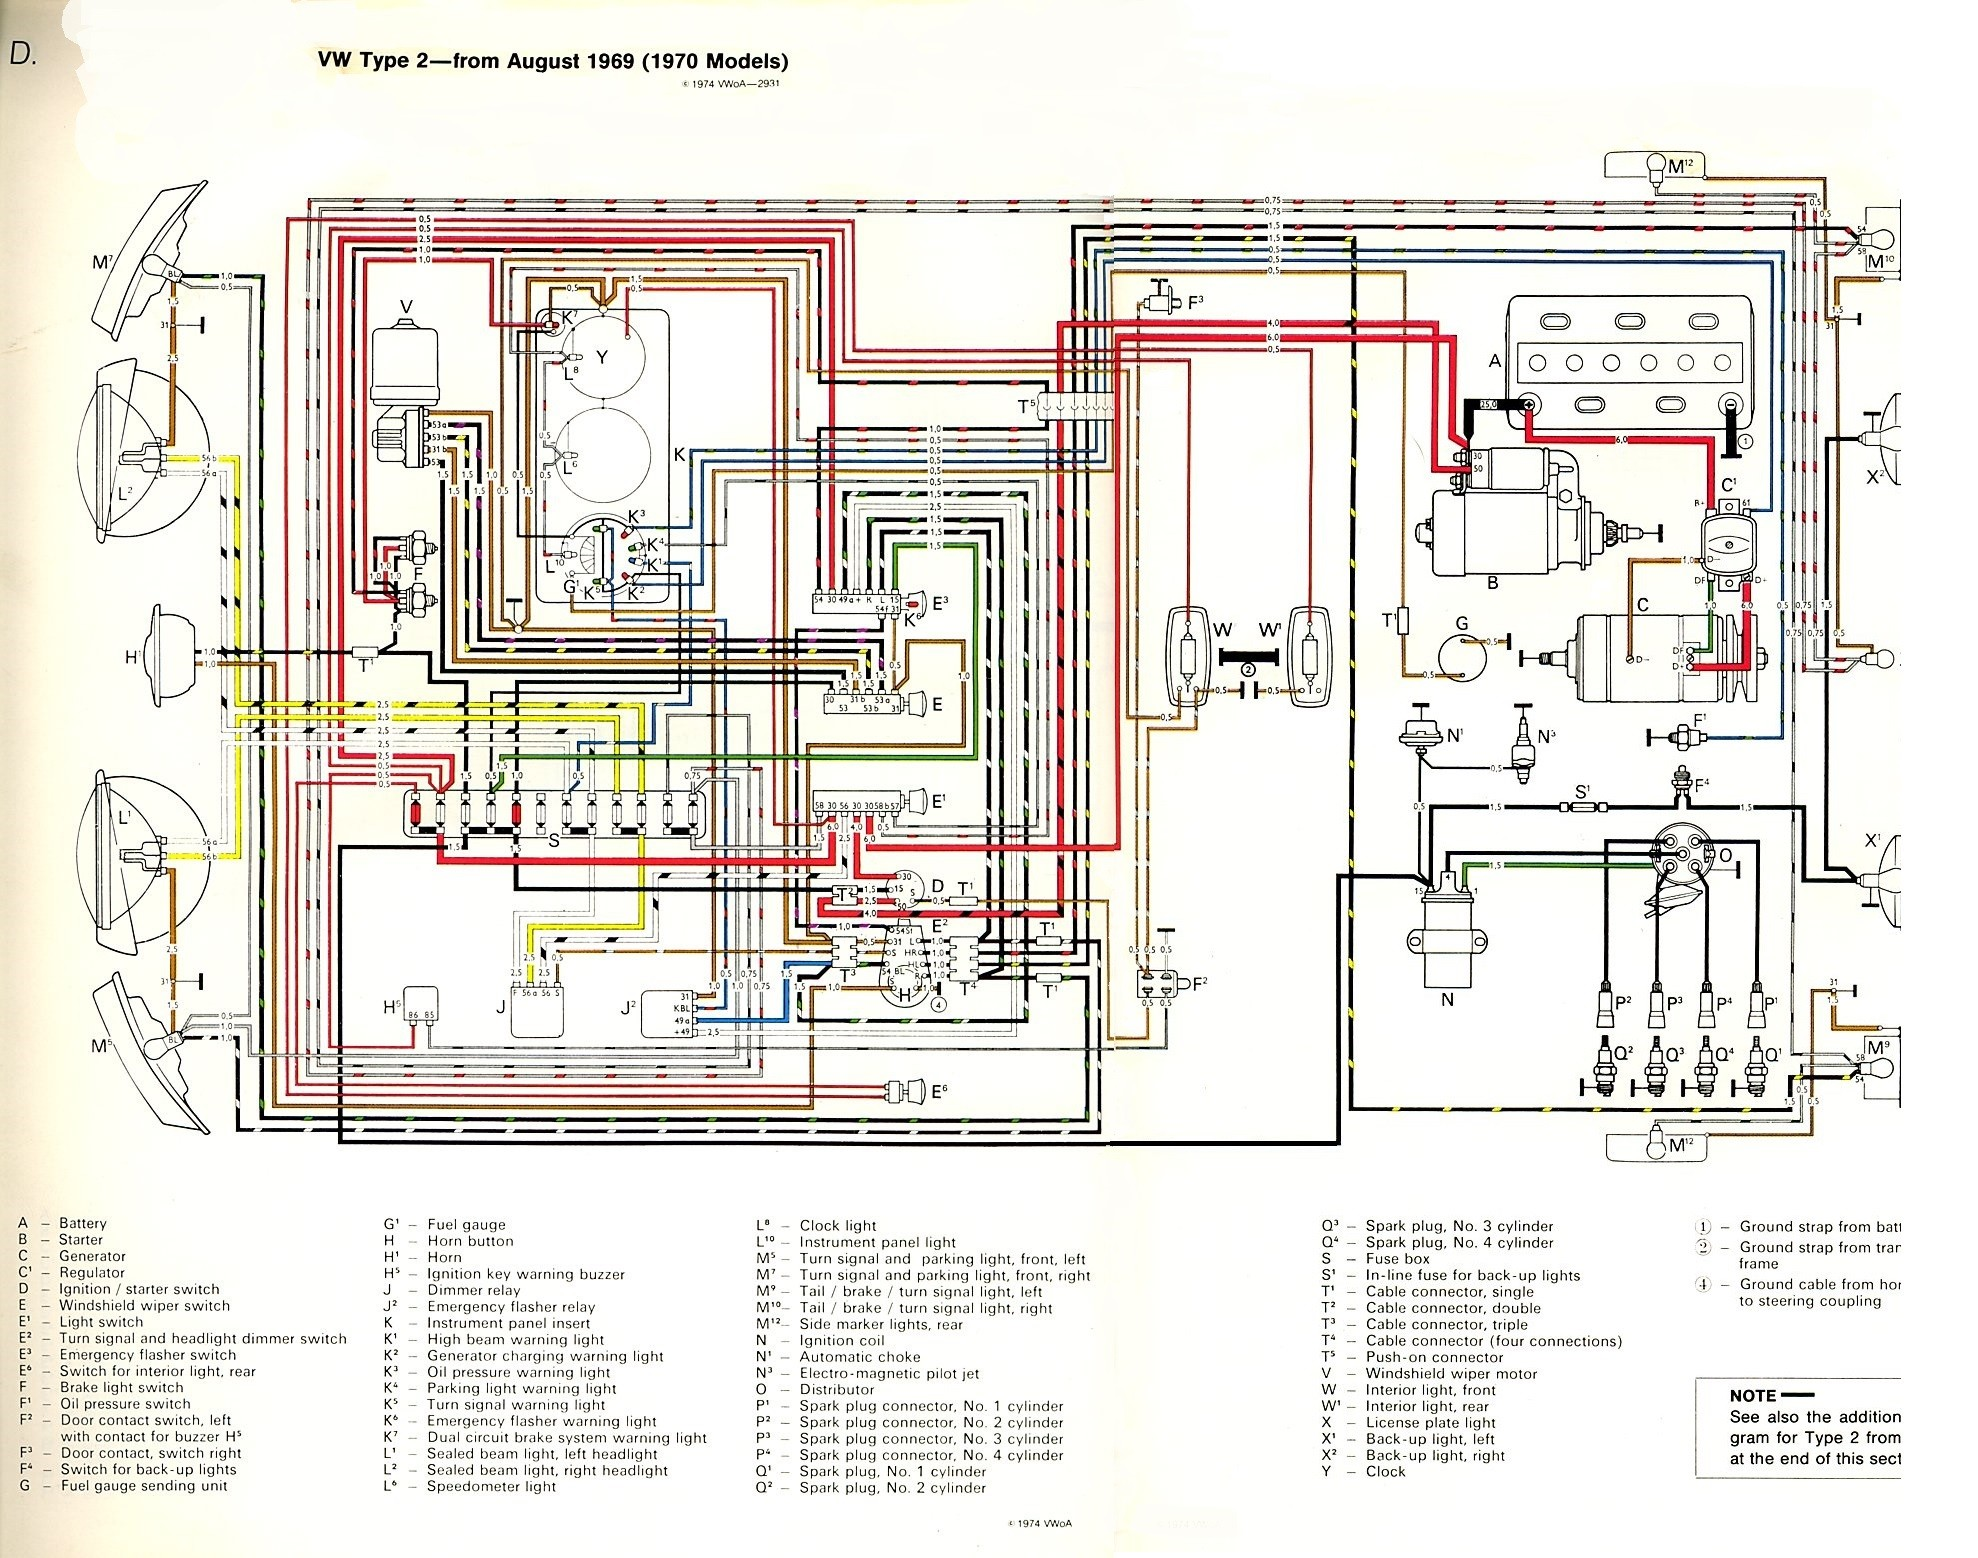 1968 camaro engine wiring diagram schematic - wiring diagram power-view-a -  power-view-a.bookyourstudy.fr  power-view-a.bookyourstudy.fr